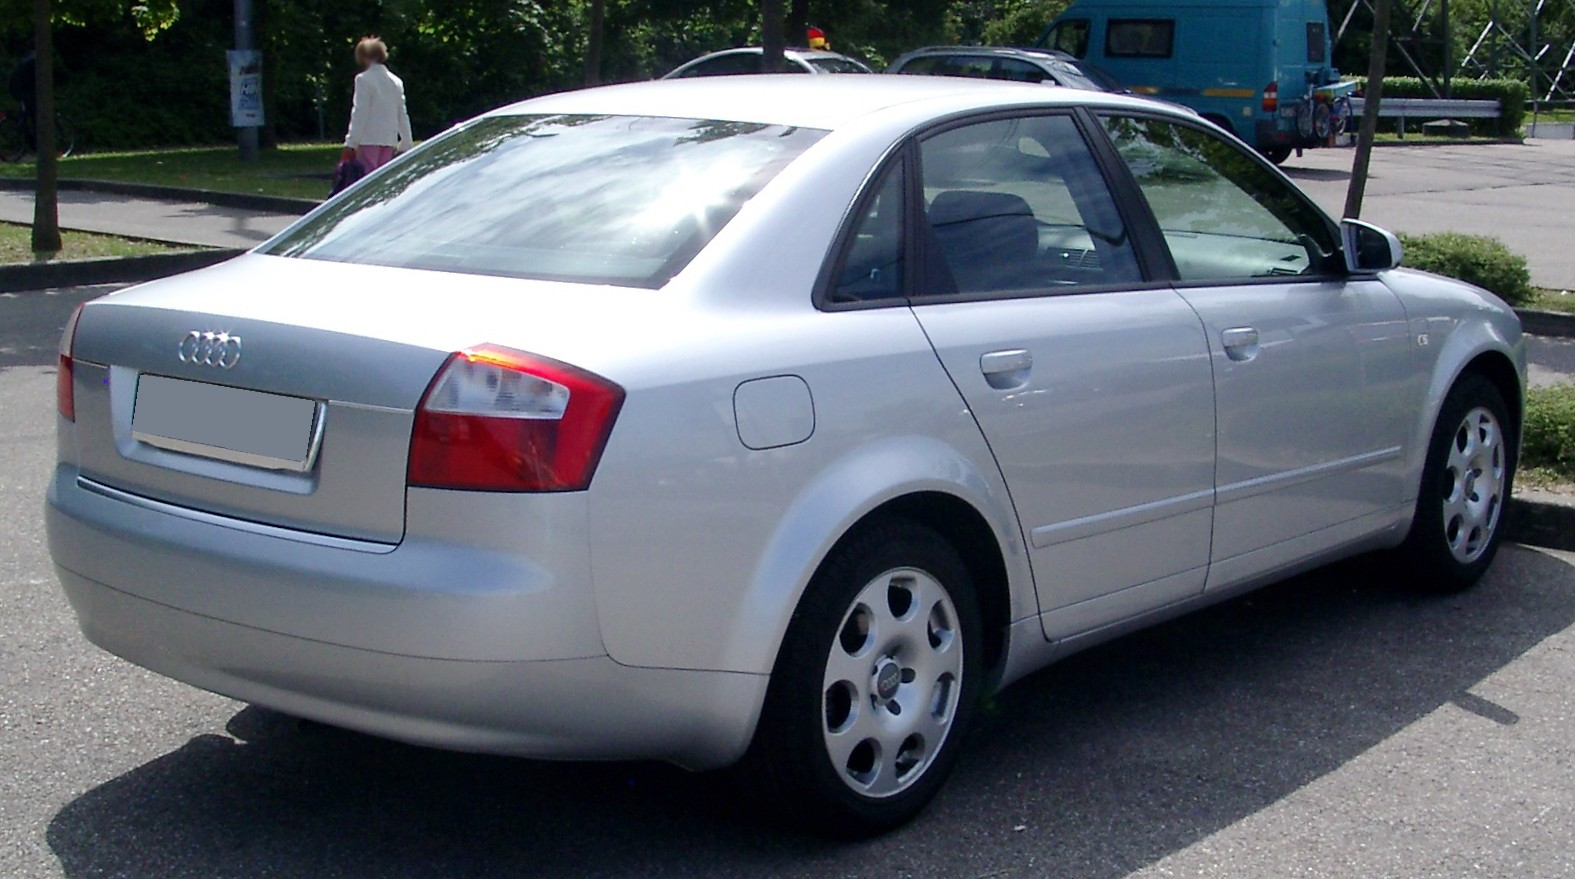 File Audi A4 B6 Rear 20080612 Jpg Wikimedia Commons